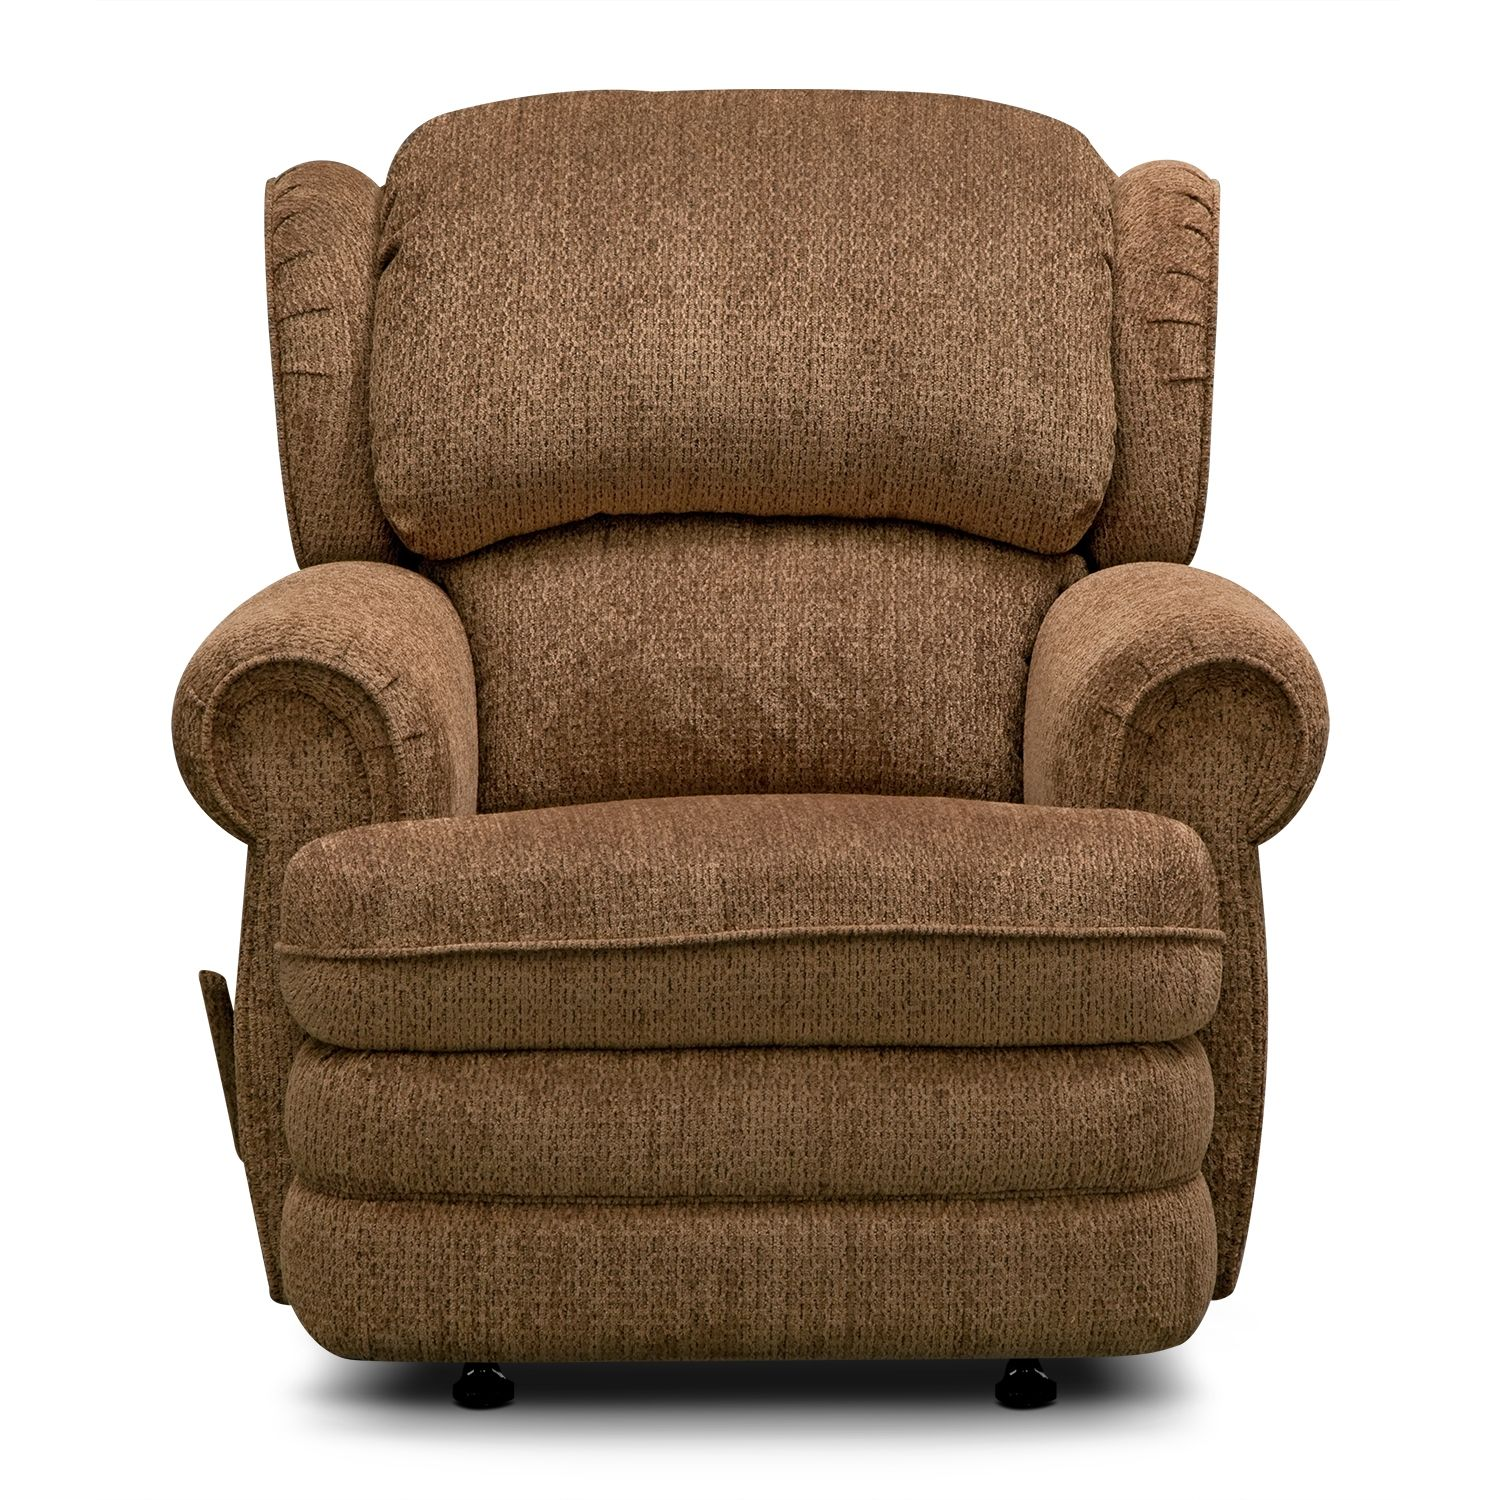 Awe Inspiring Addison Rocker Recliner Value City Furniture Recliners Cjindustries Chair Design For Home Cjindustriesco